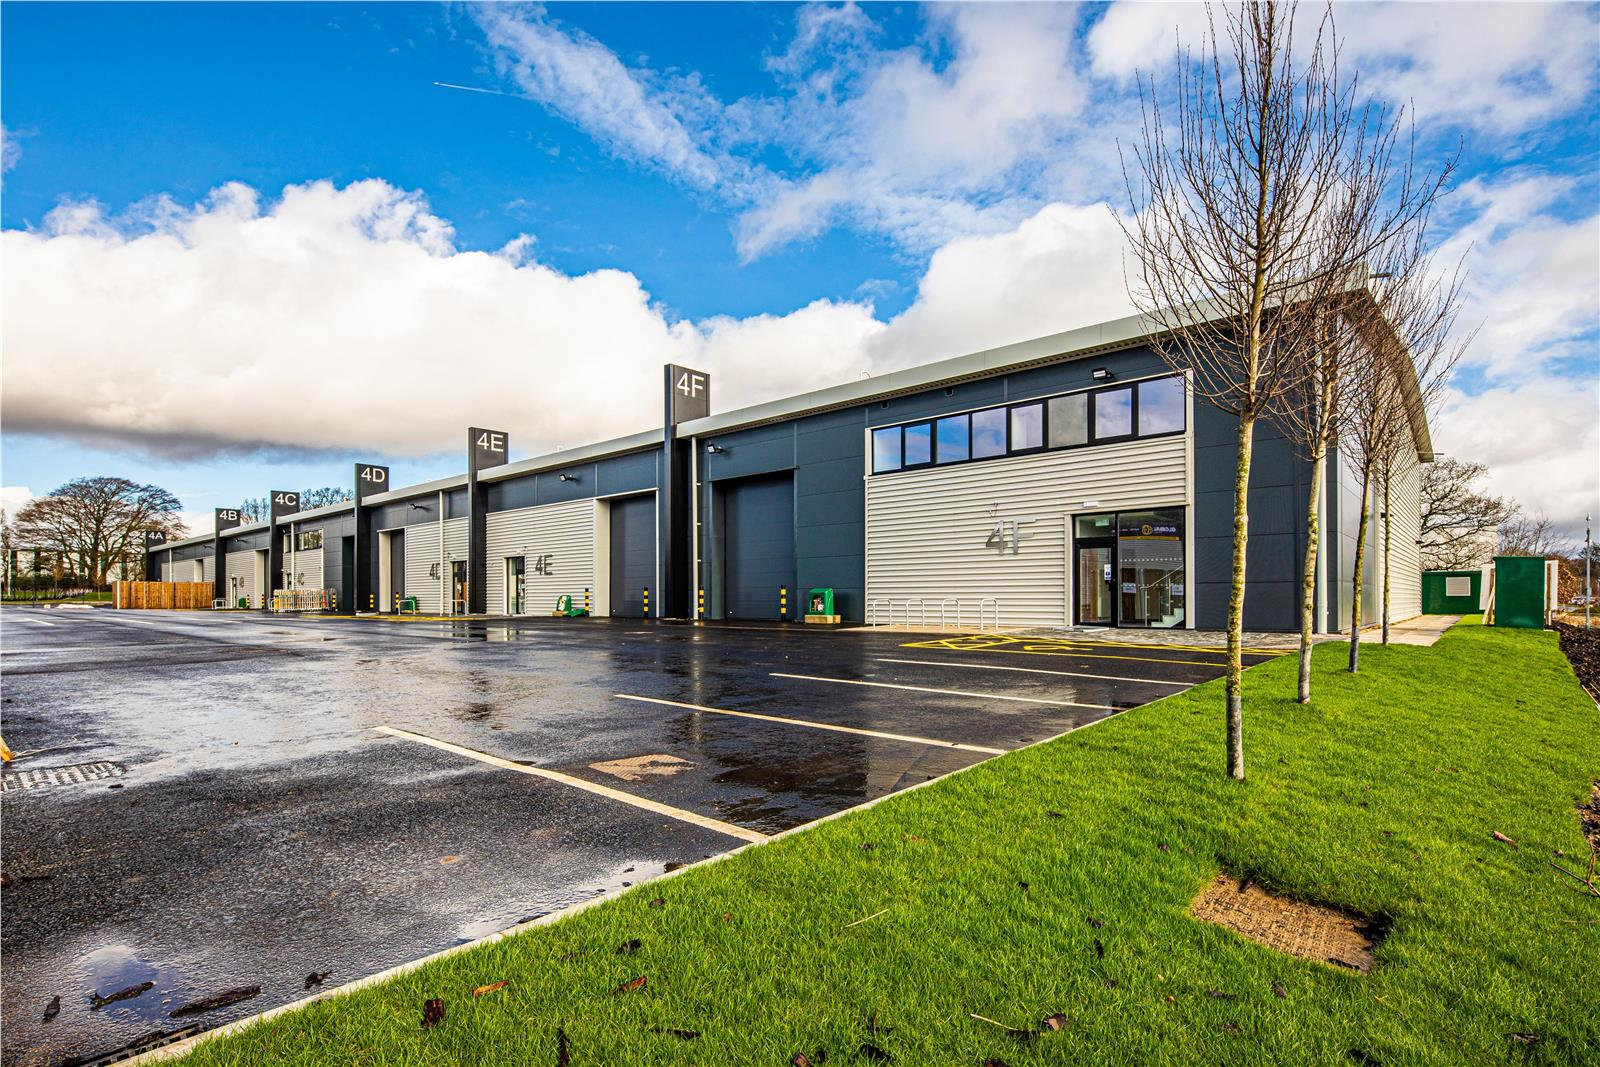 Unit 4f, Butterfield Business Park, Luton